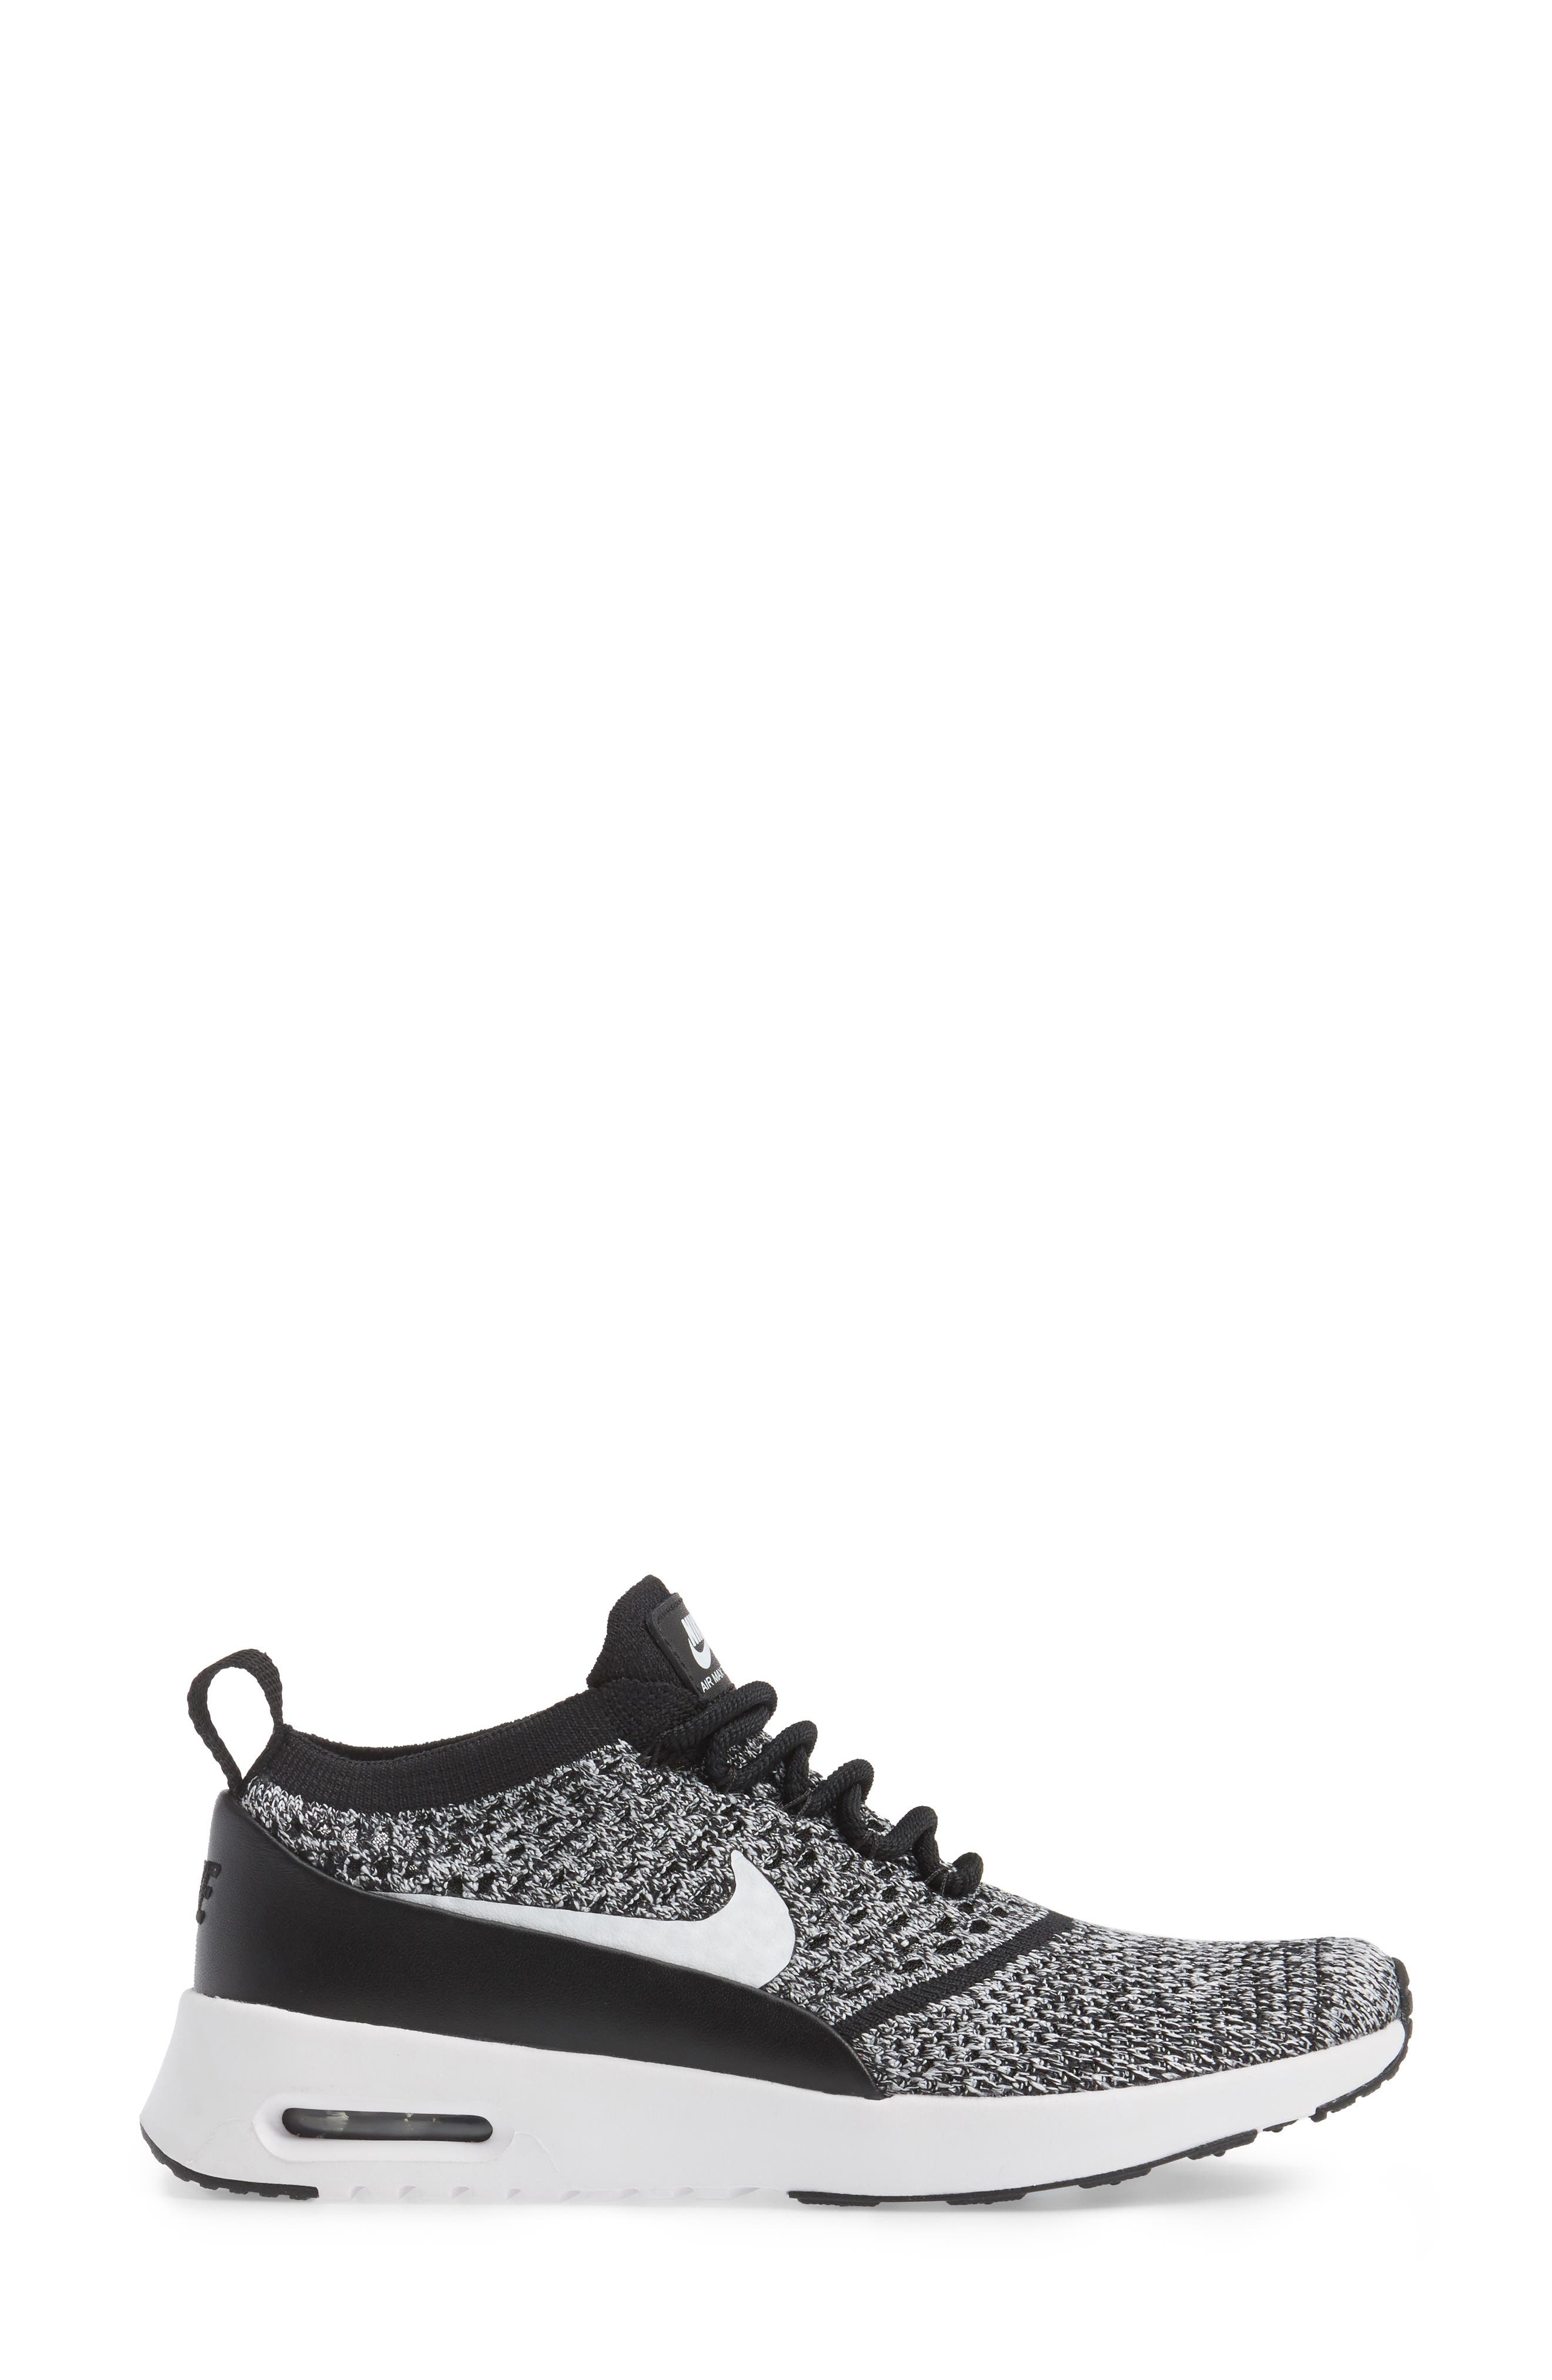 Alternate Image 3  - Nike Air Max Thea Ultra Flyknit Sneaker (Women)